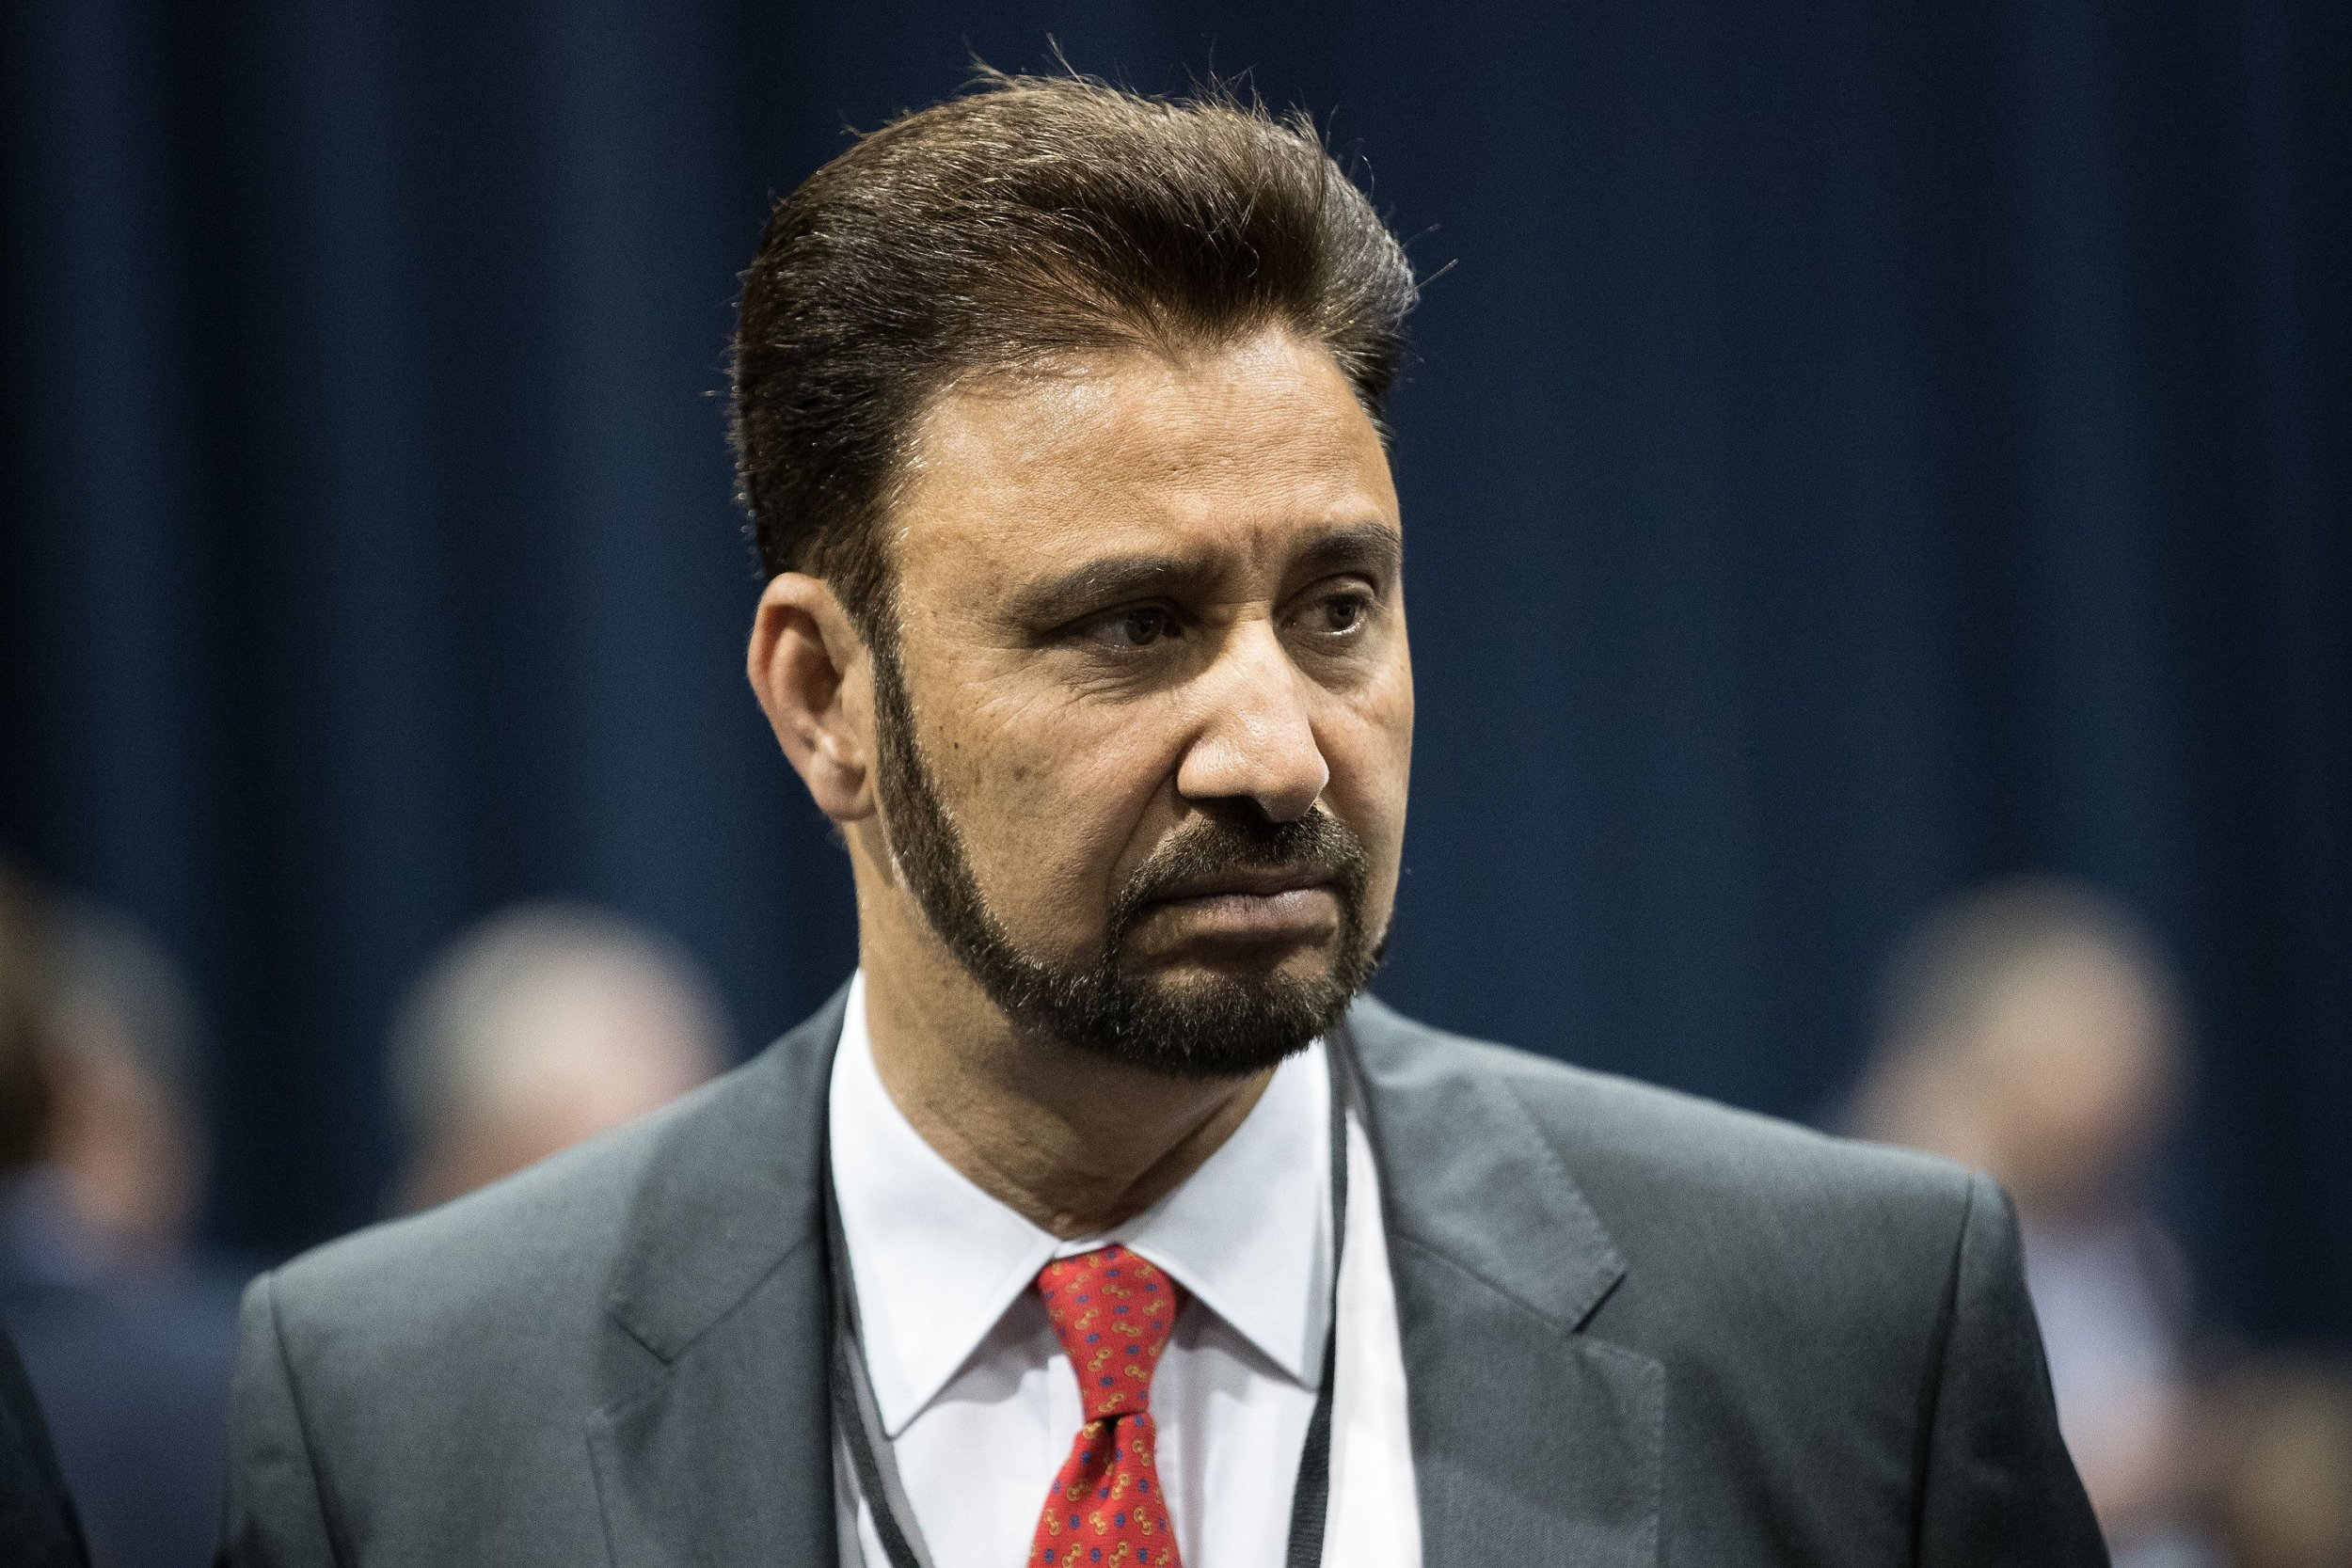 Mandatory Credit: Photo by Joel Goodman/LNP/REX/Shutterstock (8861116s) Afzal Khan of Labour Party at the Manchester Central Convention Centre where the count for the constituencies of Blackley and Broughton, Manchester Central, Manchester Gorton, Manchester Withington and Wythenshawe and Sale East, in the General Election, is taking place. UK General Election, polling day, results, Manchester, UK - 08 Jun 2017